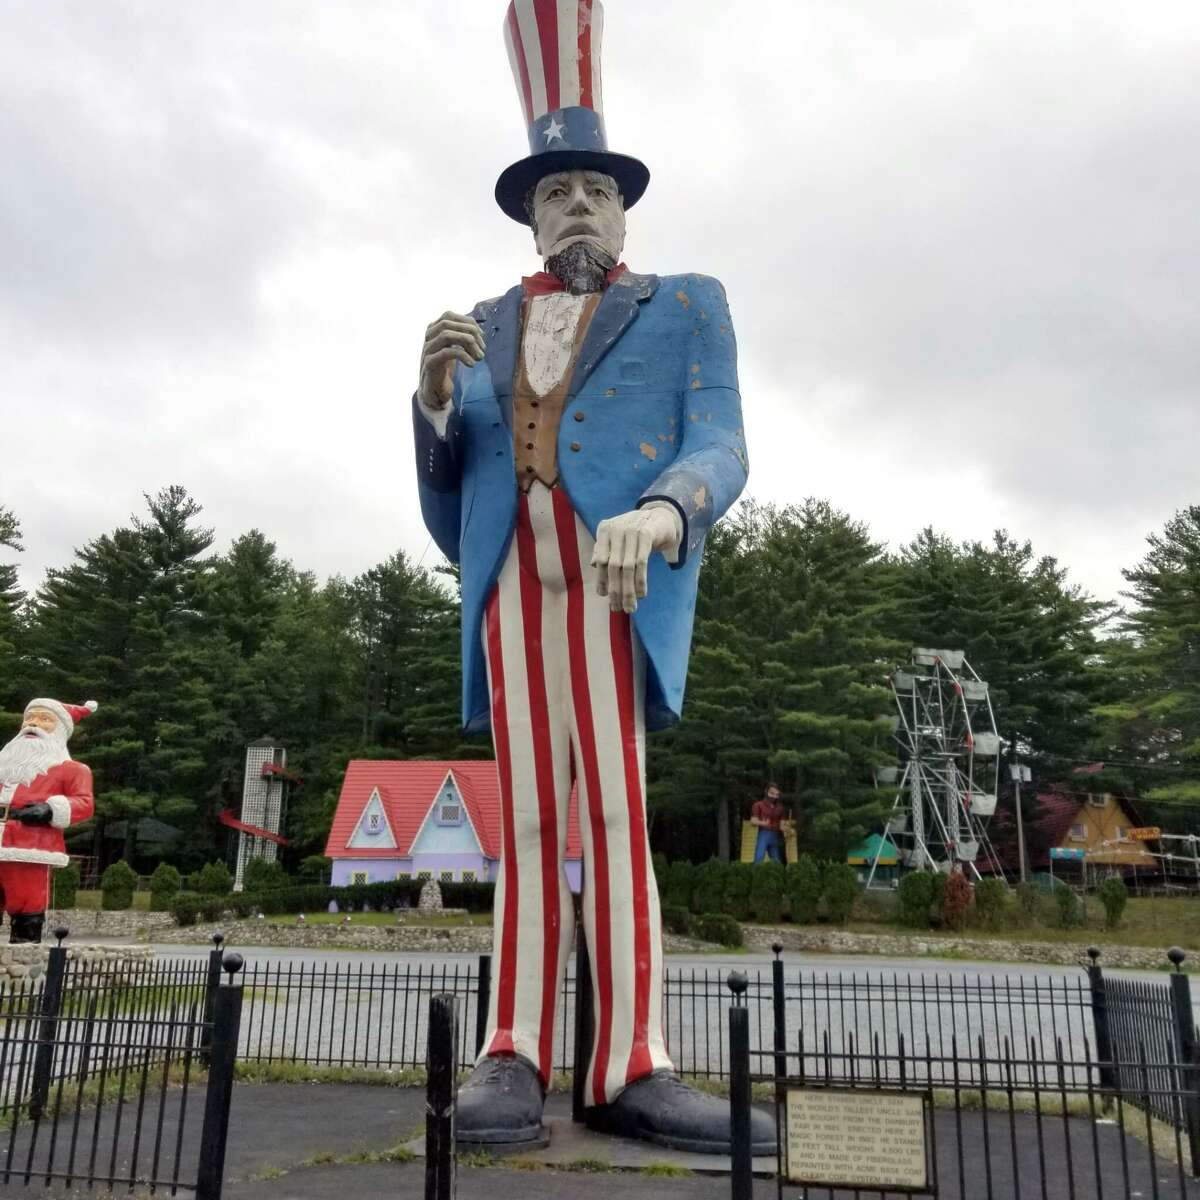 This 38-foot-tall Uncle Sam that once greeted visitors to the Danbury Fair is departing a family amusement park in Lake George, New York, and returning home Thursday to Danbury.